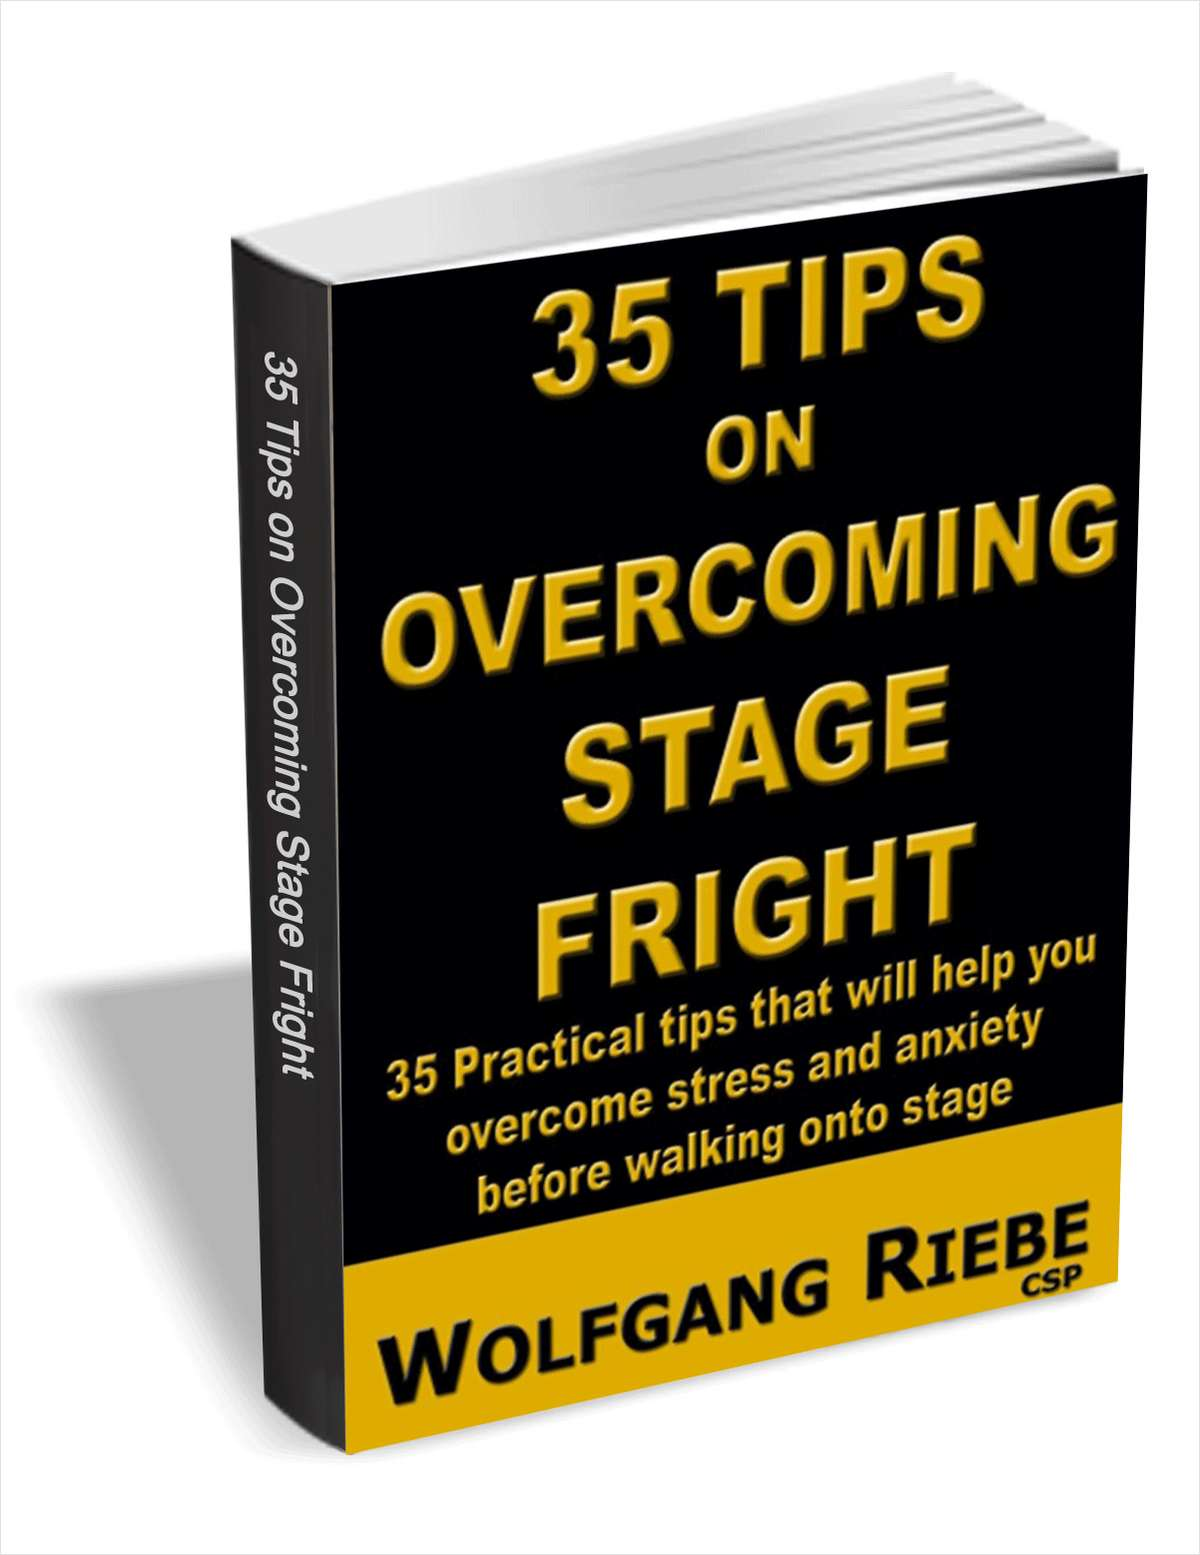 35 Tips on Overcoming Stage Fright